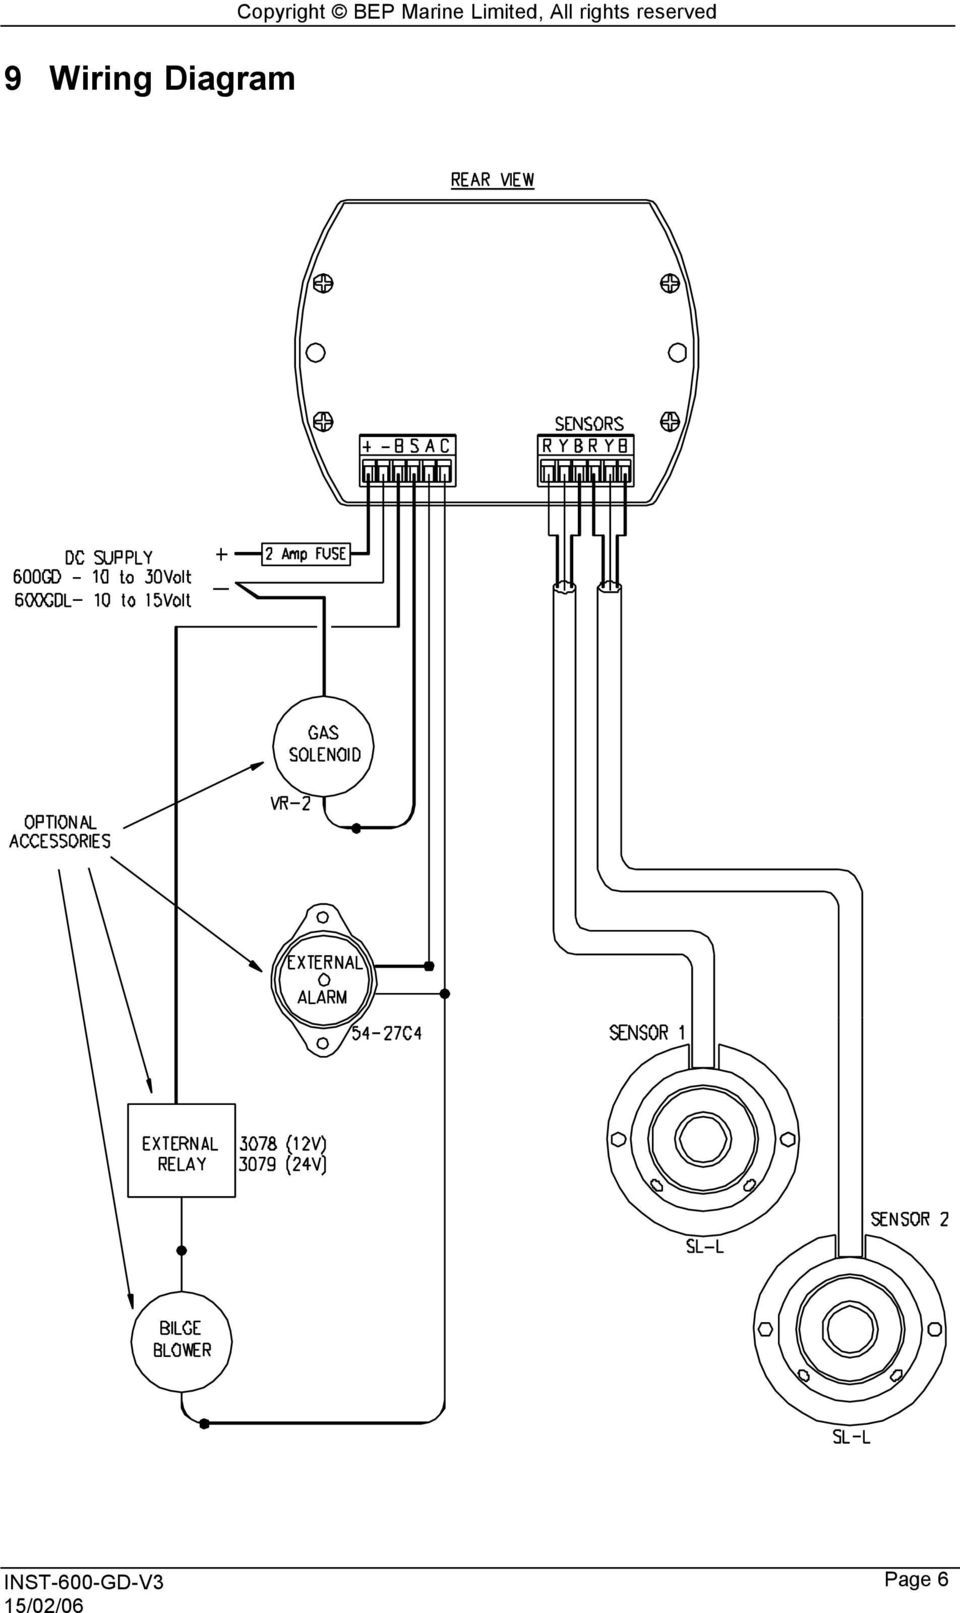 600-GD & 600-GDL 600 SERIES GAS DETECTOR - PDF on blower assembly diagram, blower coil, motors 4 blowers wire diagram, blower fan diagram, blower pump diagram, blower engine diagram, blower relay diagram, blower carburetor, 2001 silverado blower wire diagram, blower air cleaner, blower switch diagram, blower motor resistor diagram, blower fan wiring, blower dimensions,